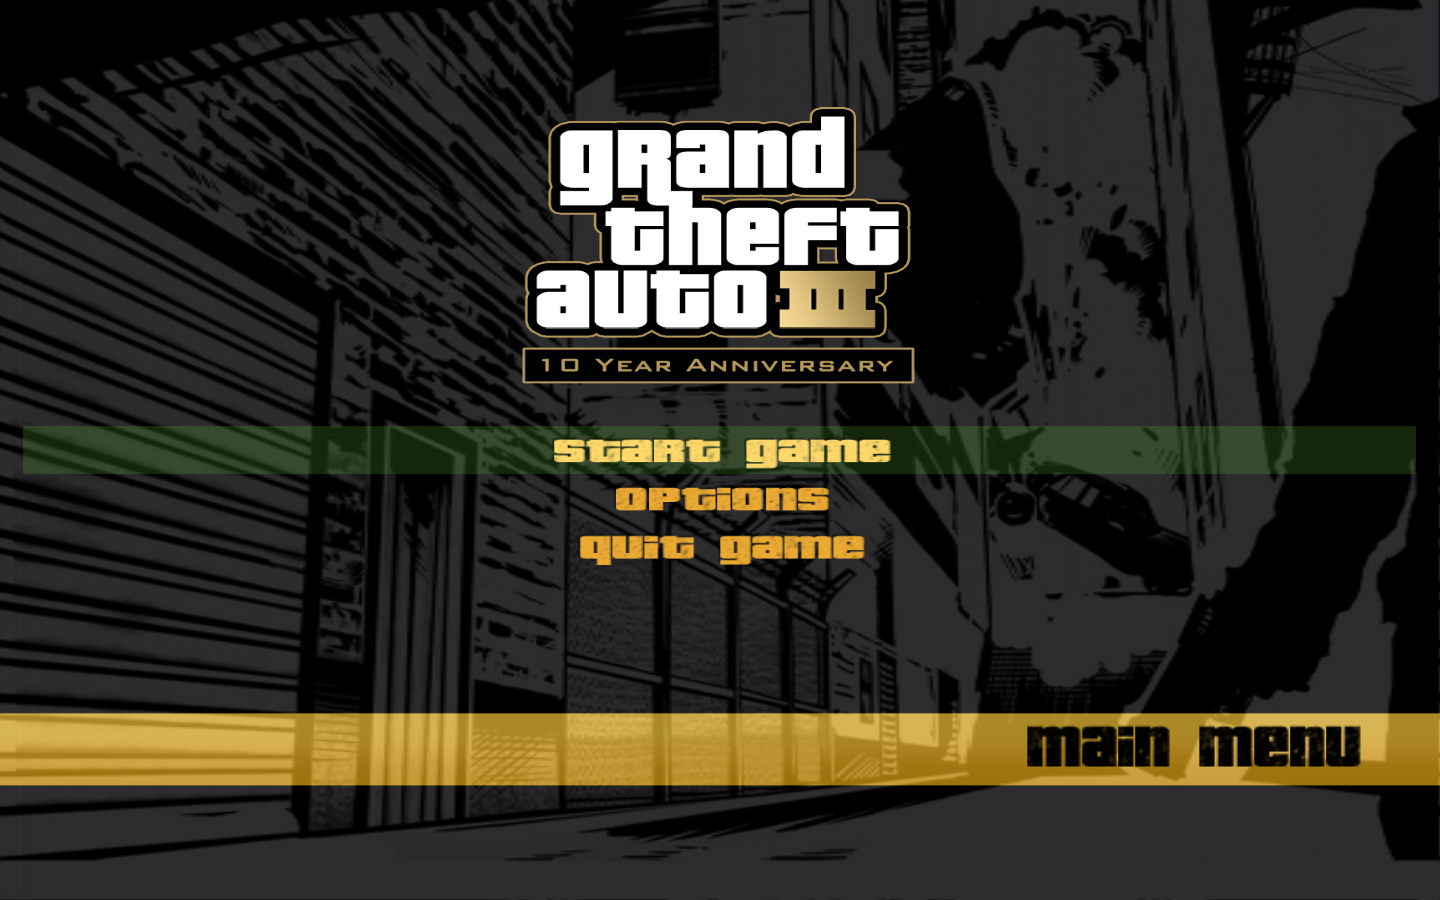 Gta San Andreas Wallpaper Hd The Gta Place 10th Anniversary Menu